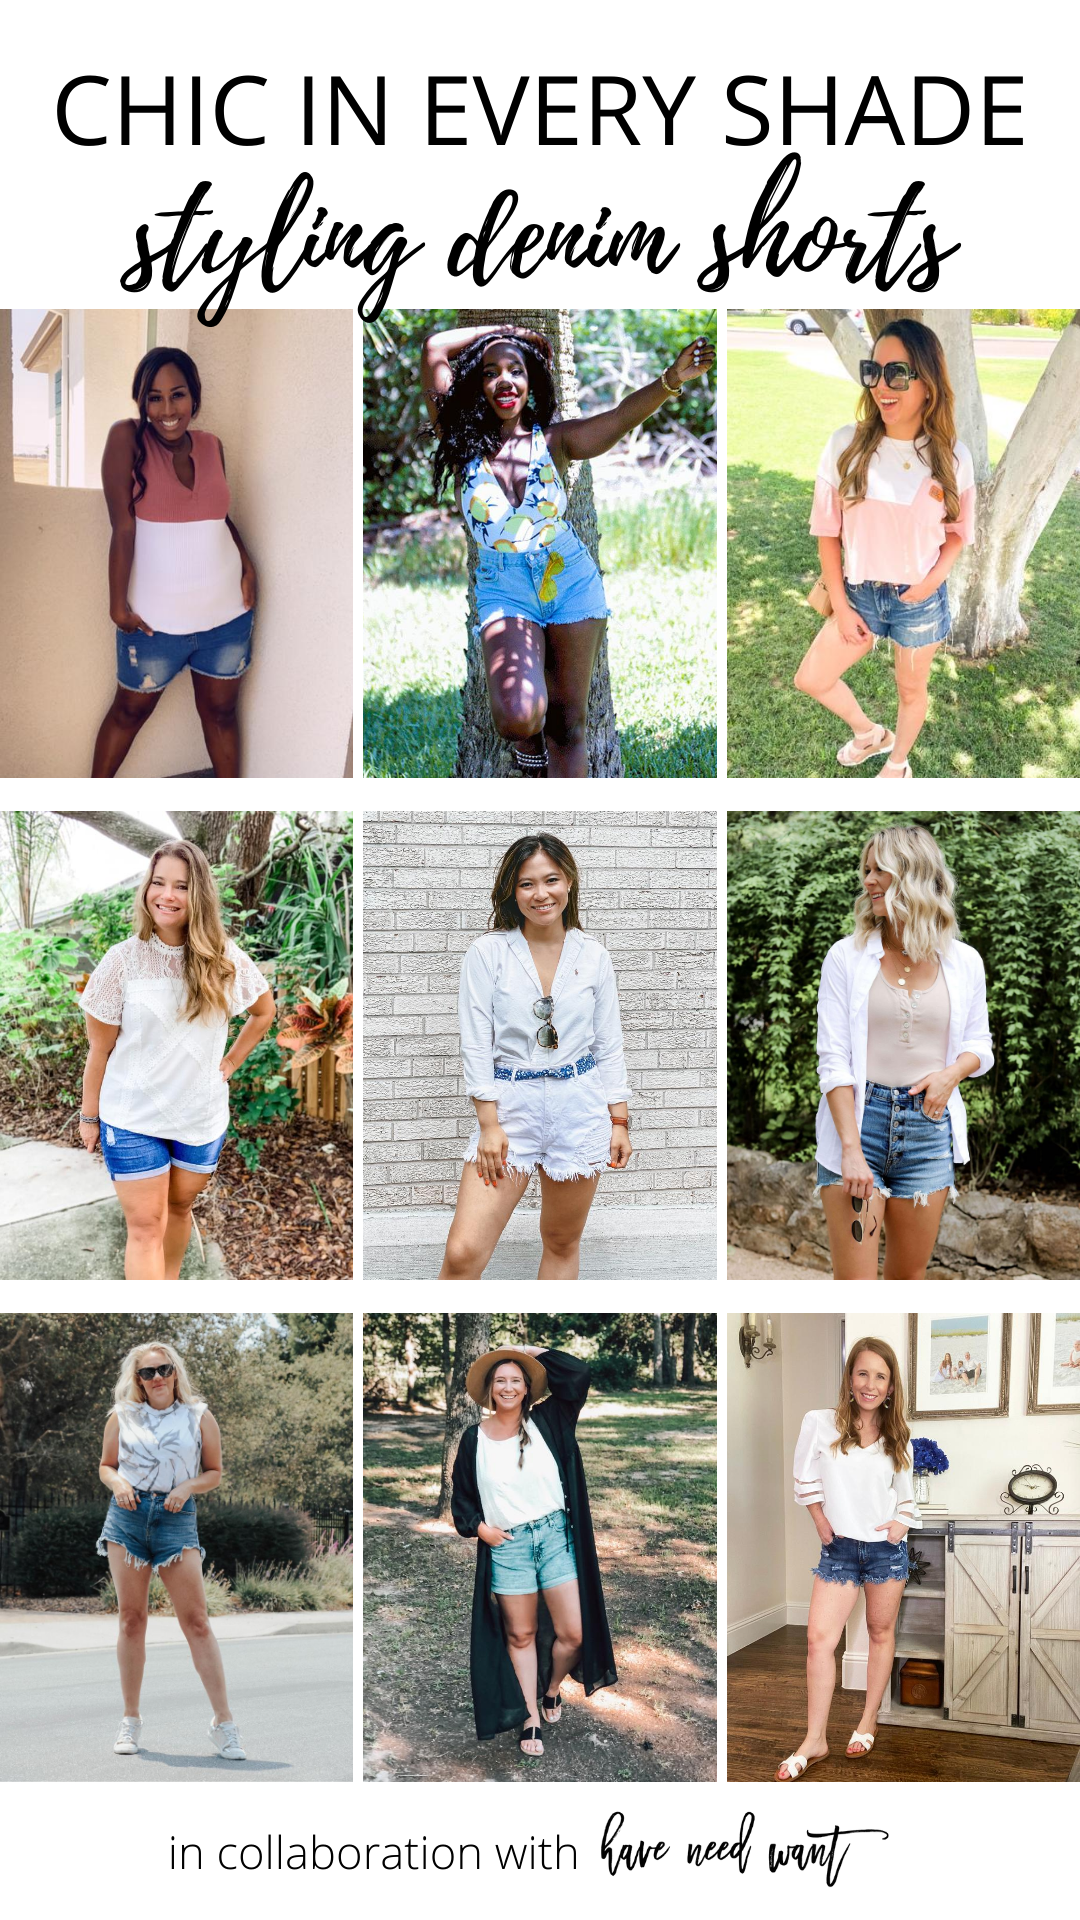 This month I teamed up with an amazing group of women for a styling challenge with a message close to my heart. Chic in Every Shade challenges women in a wide range of different skin tones to style the same piece of clothing. I love showcasing how beauty comes in all colors. This month we tackled distressed denim shorts.